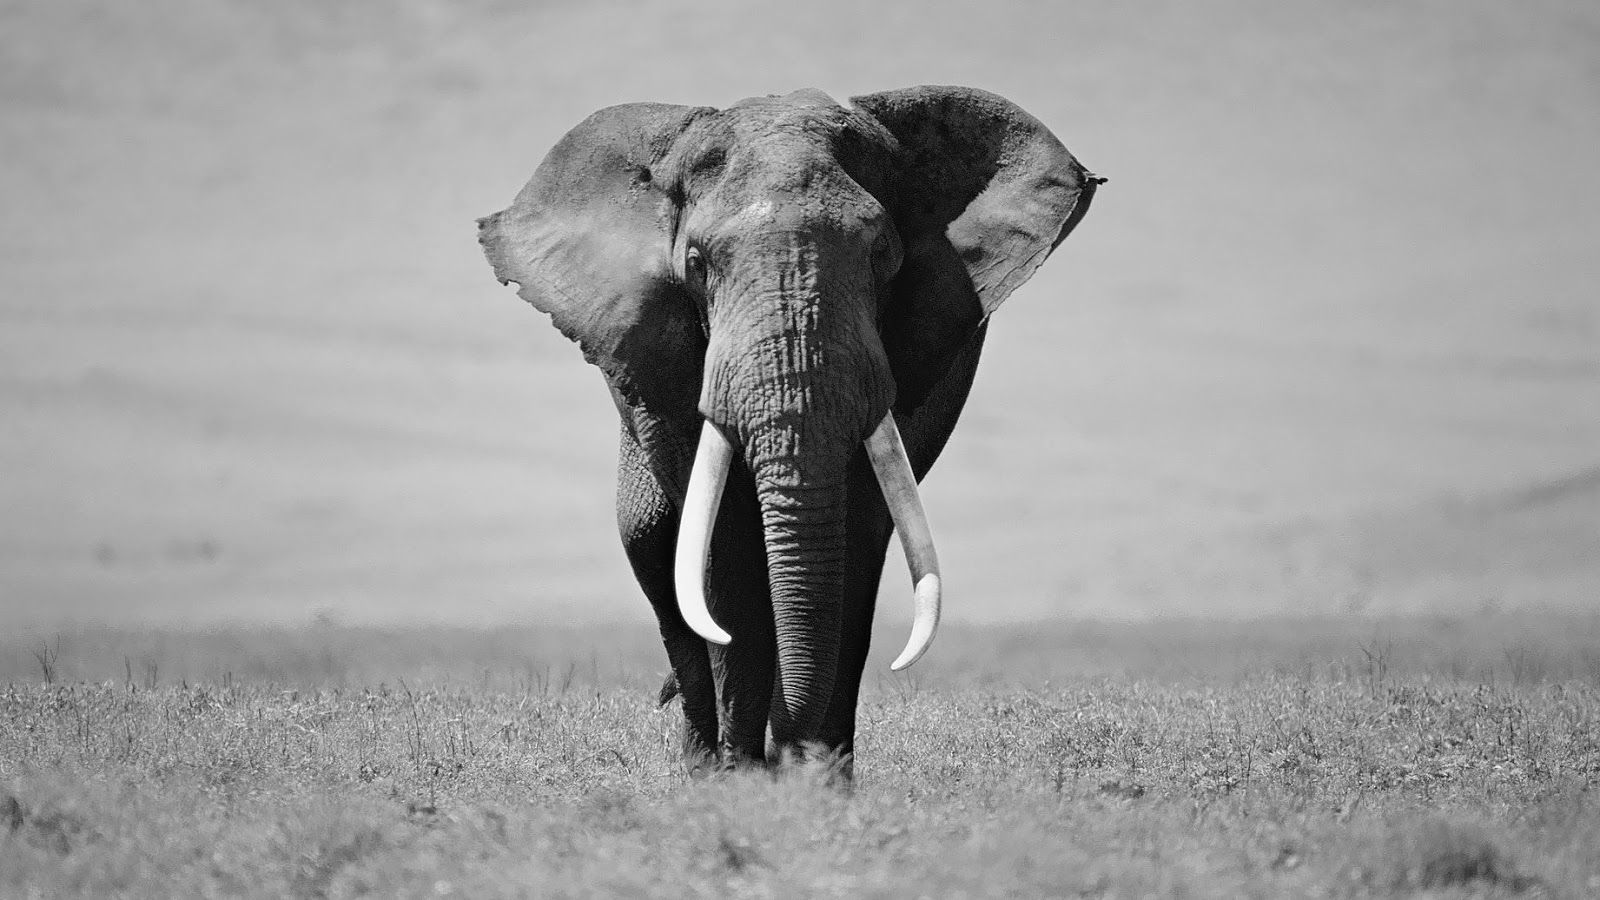 black and white animal photo black and white elephant wallpaper hd animal background photo. Black Bedroom Furniture Sets. Home Design Ideas